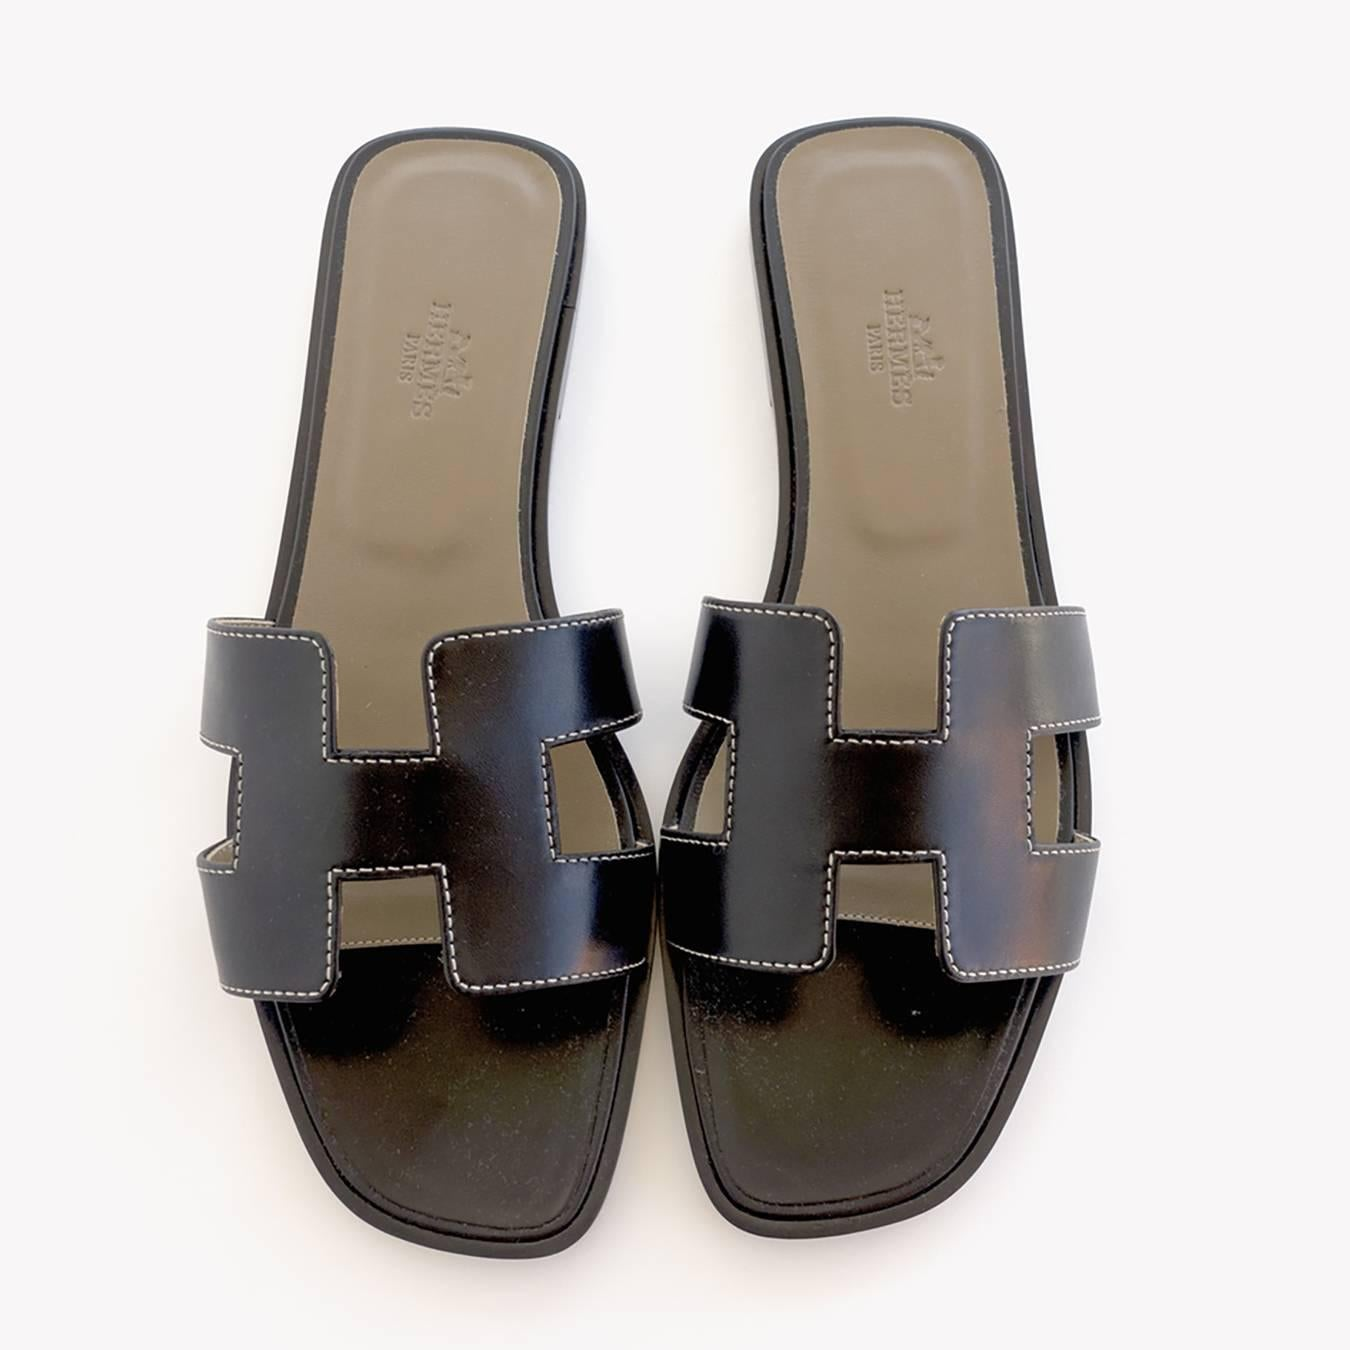 4d5920a7c5c2 Hermes Oran Black Box Leather Sandals White Stitching Size 40 or 3.9 or 10  at 1stdibs